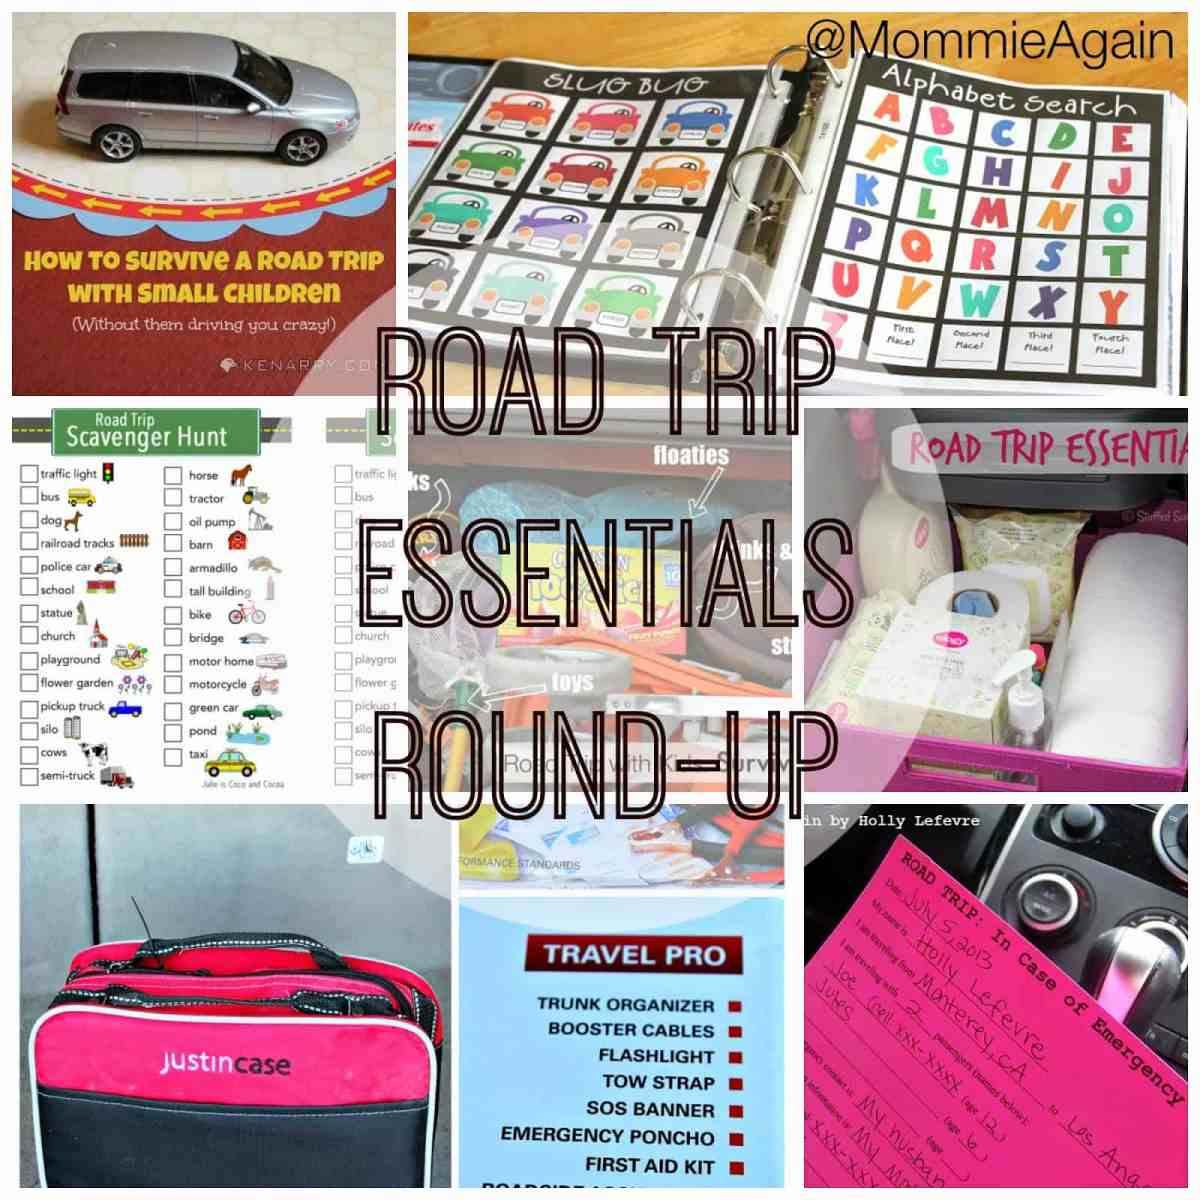 Road Trip Essentials Round-Up